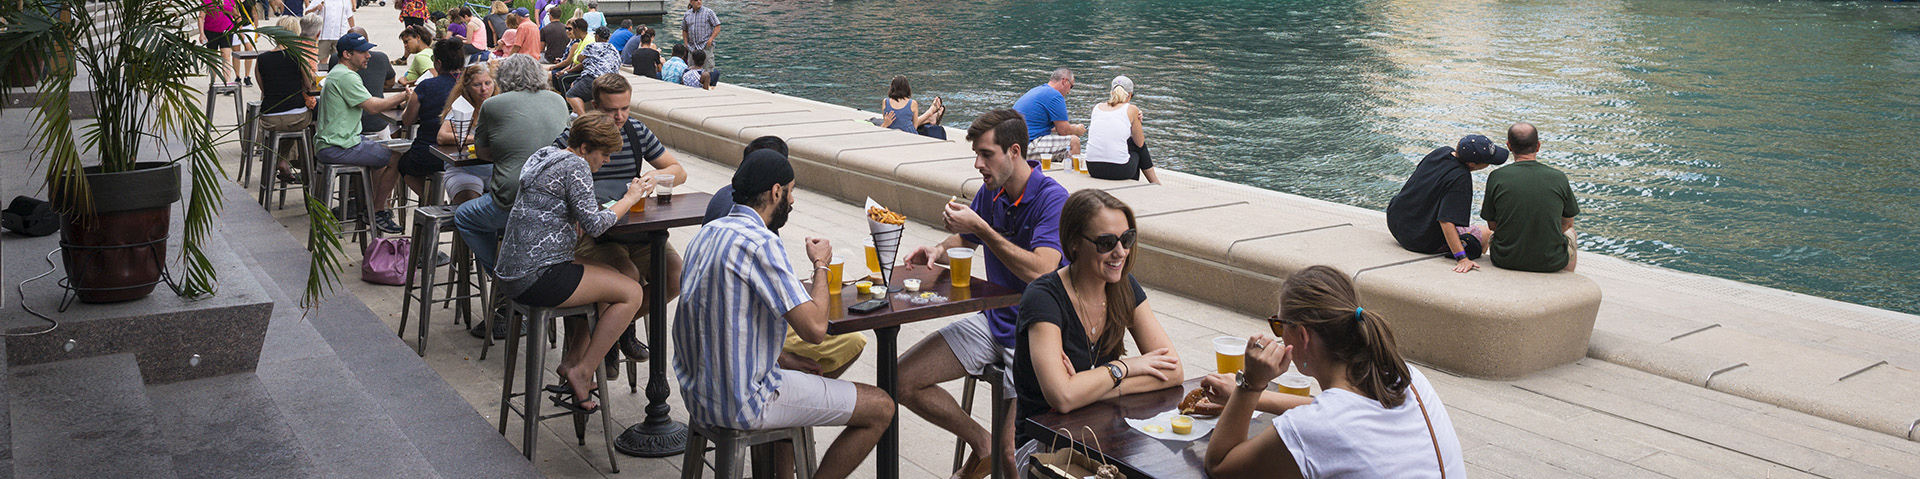 Dining on the Riverwalk